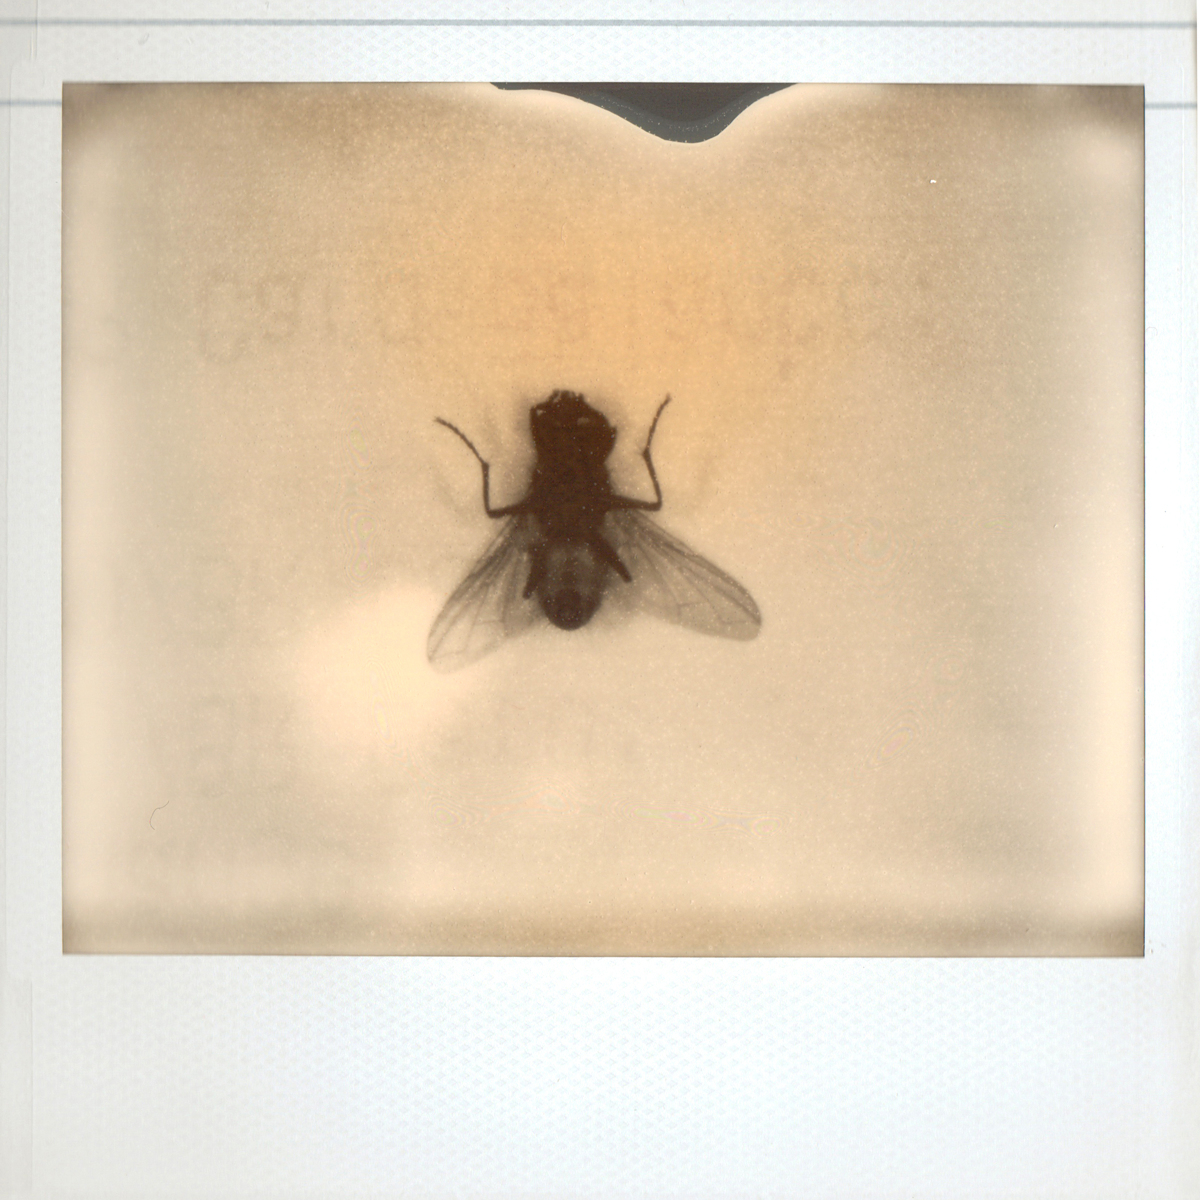 Fly (large view)